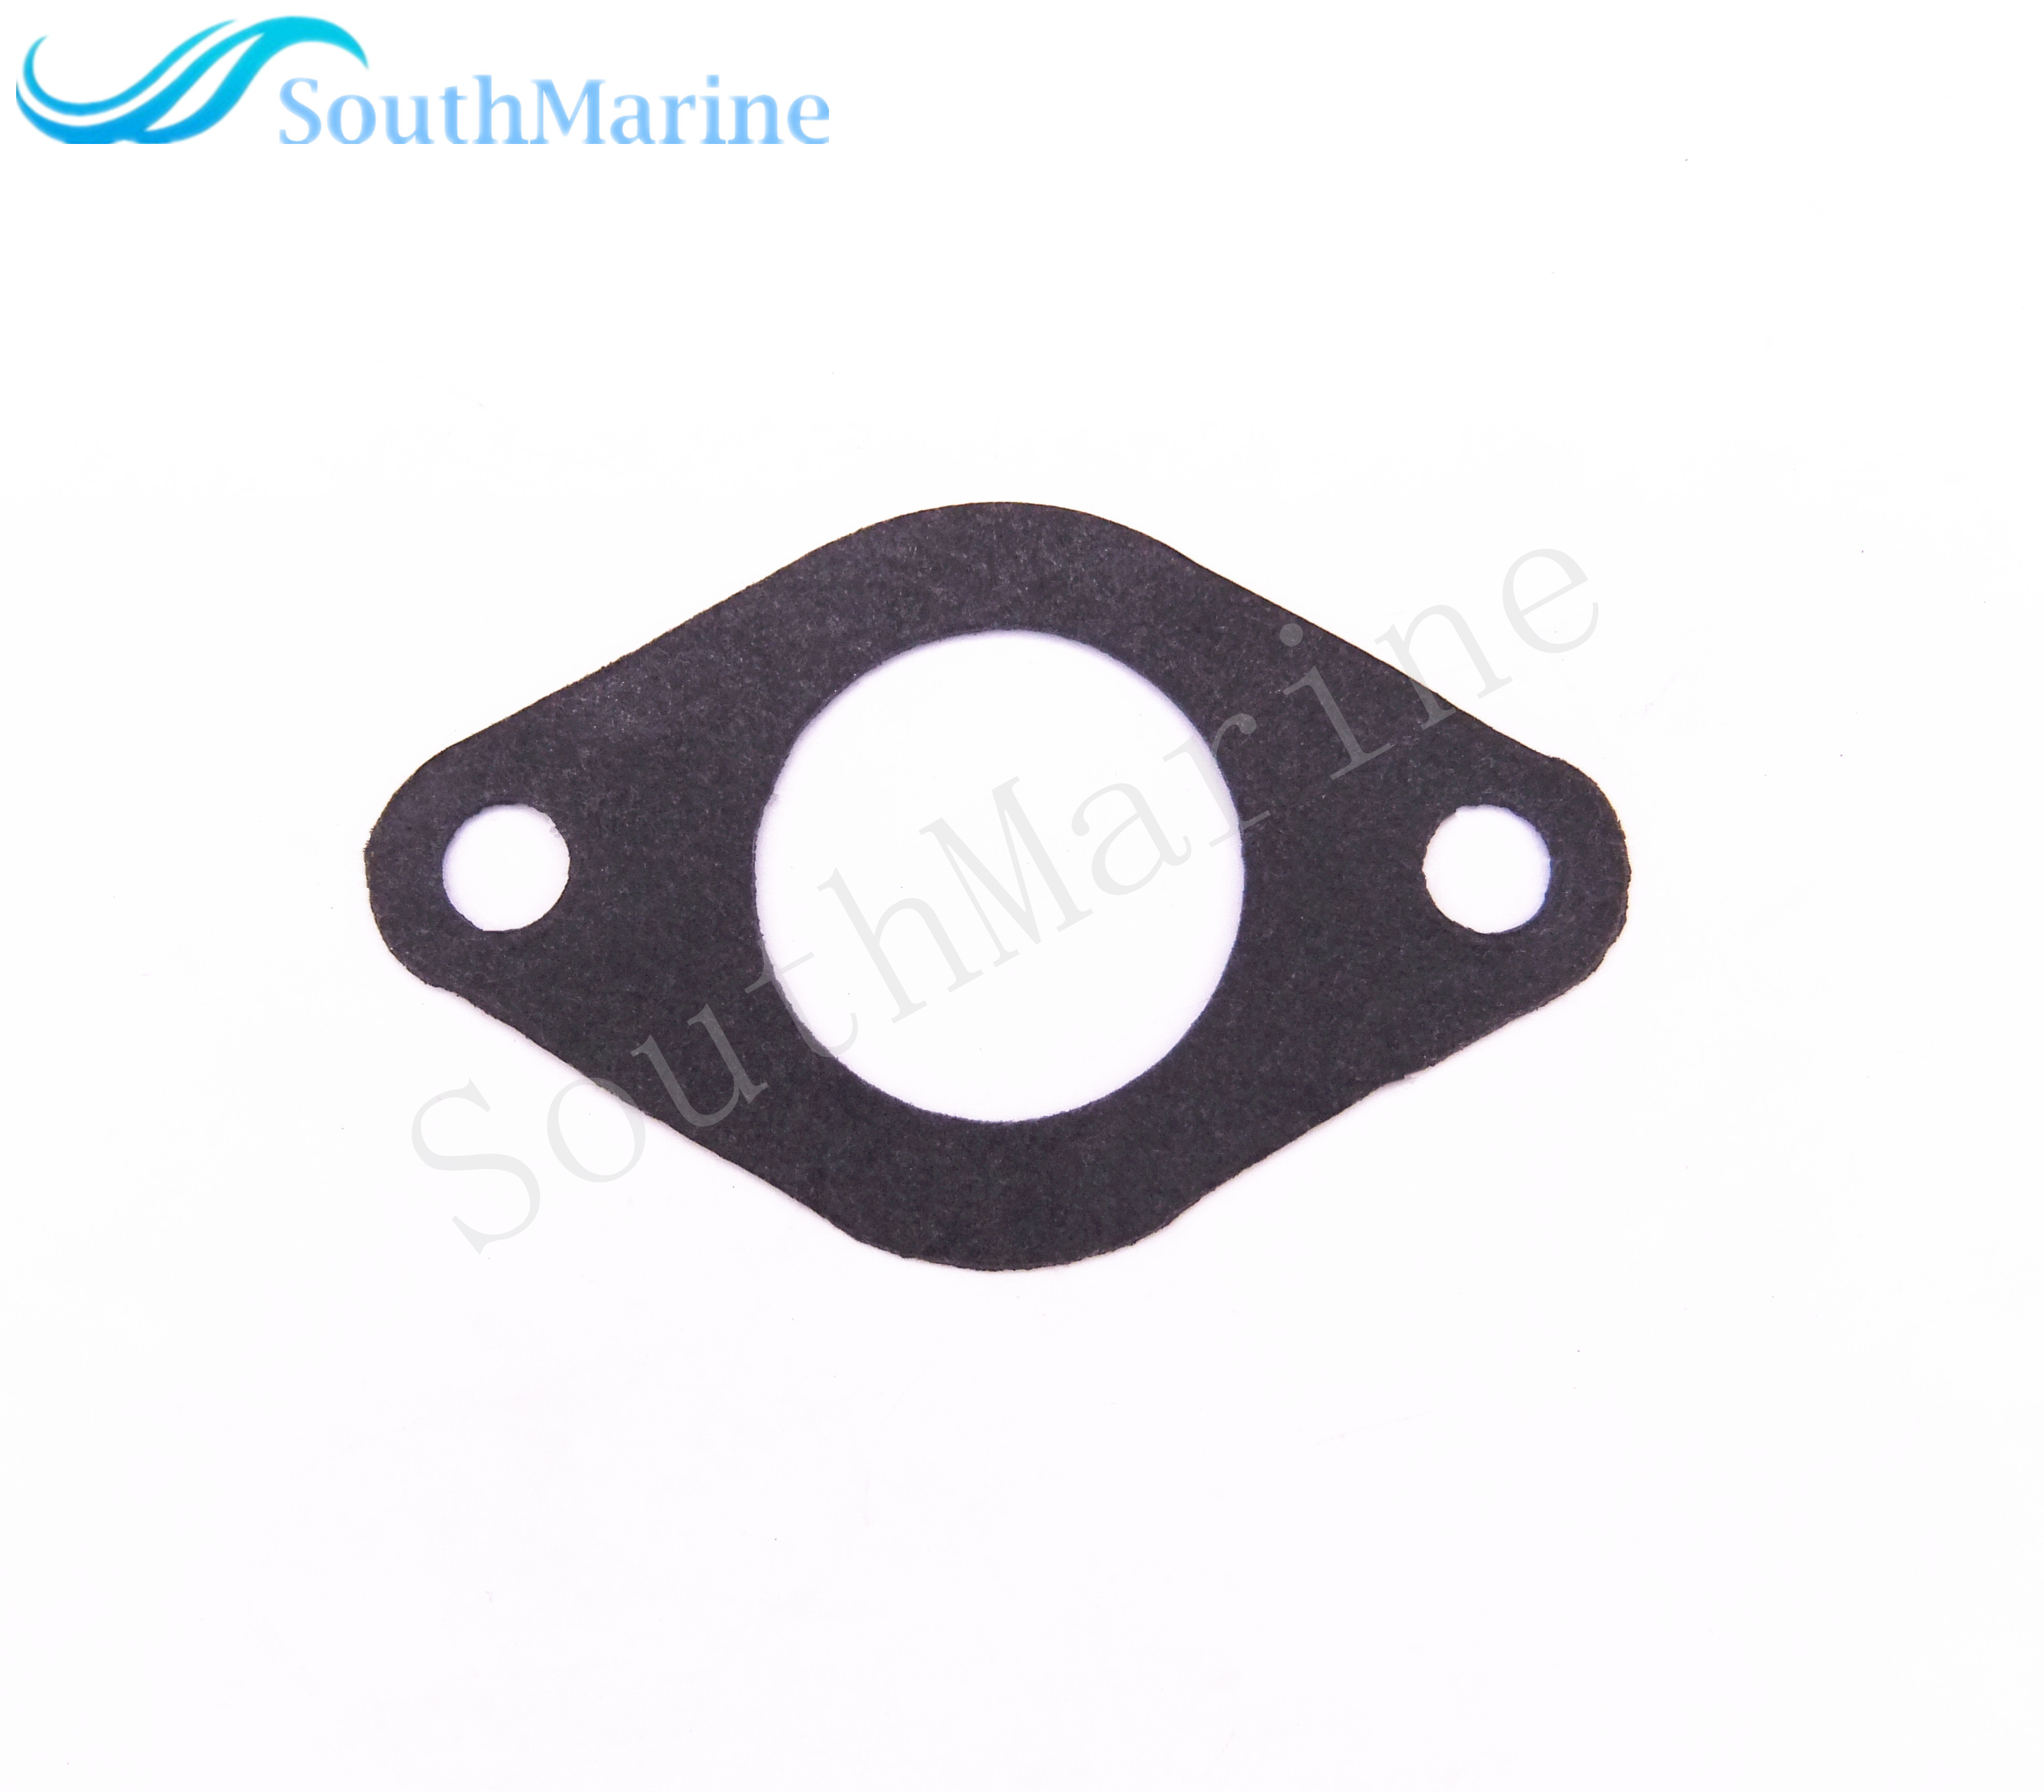 Boat Motor 68D-E3646-A0 Manifold Gasket for Yamaha 4-Stroke F4 Outboard Engine